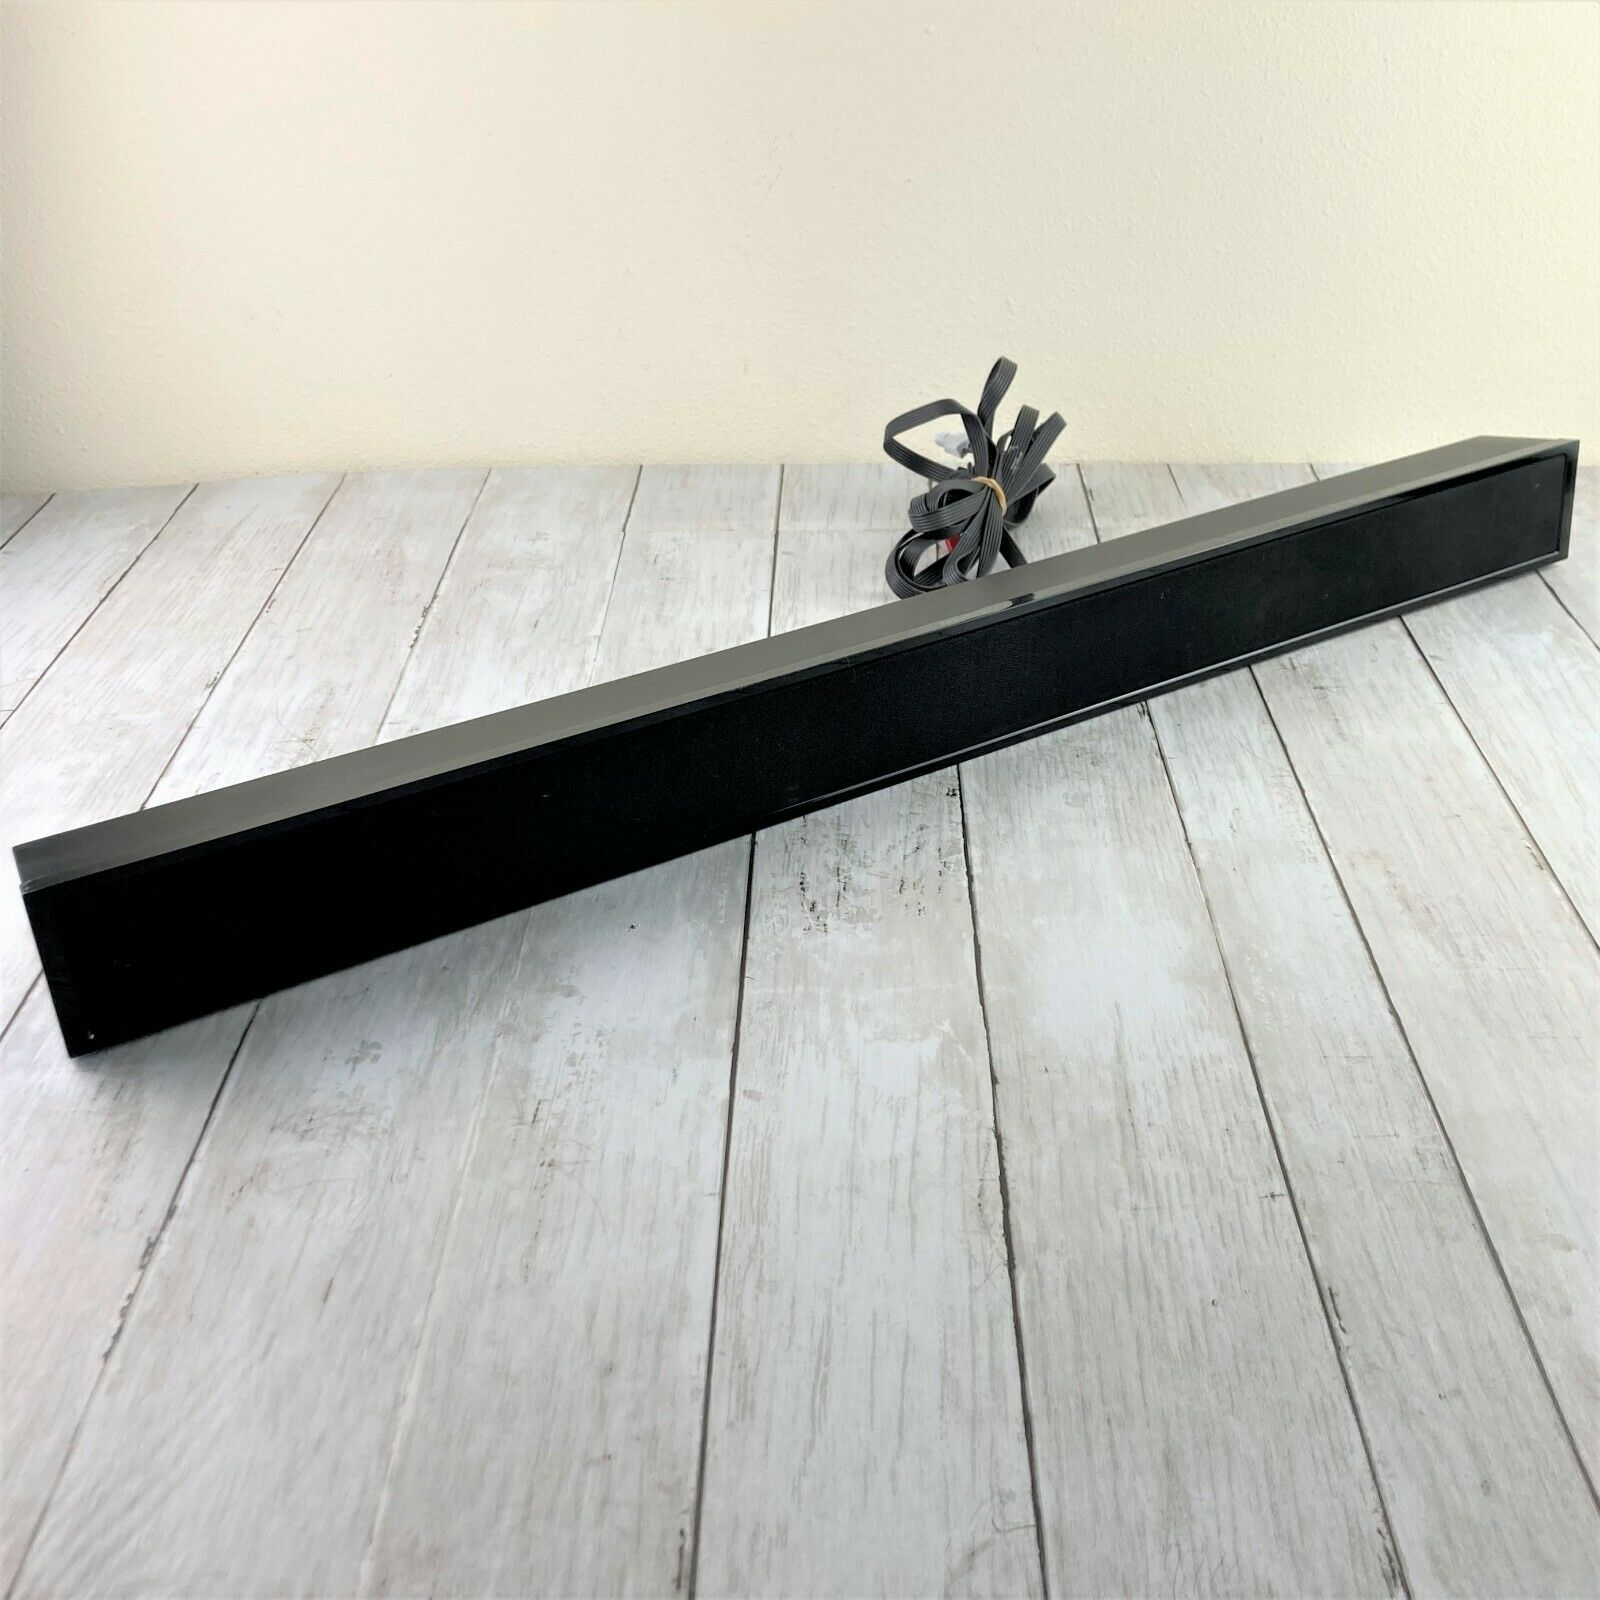 Sony SS-CT150 Soundbar ONLY with Cable for Surround Sound Home Theater System . Buy it now for 69.99